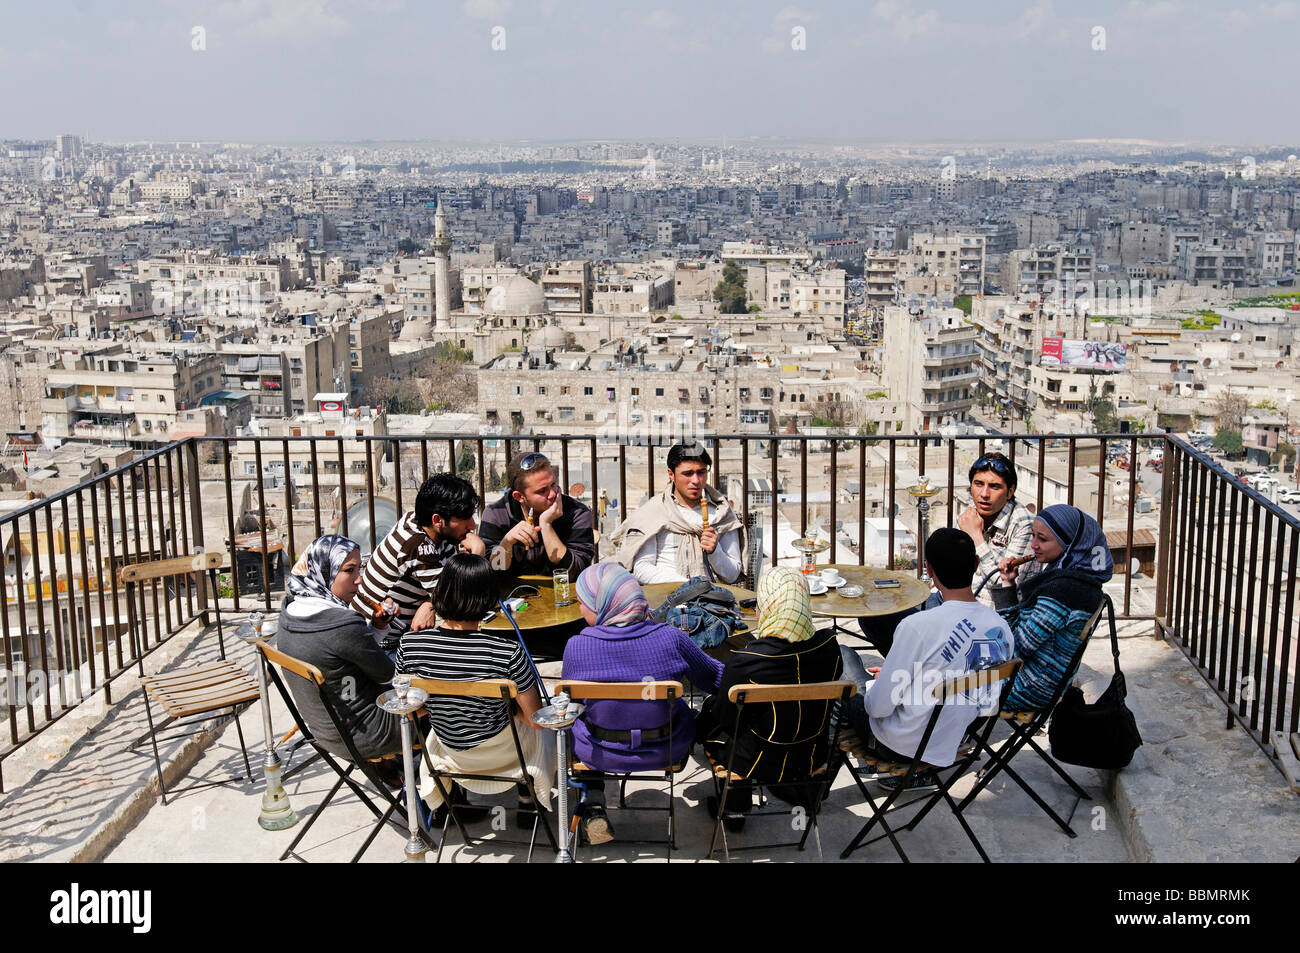 Adolescents smoking a hookah on the hill of the citadel, Aleppo, Syria, Middle East, Asia - Stock Image